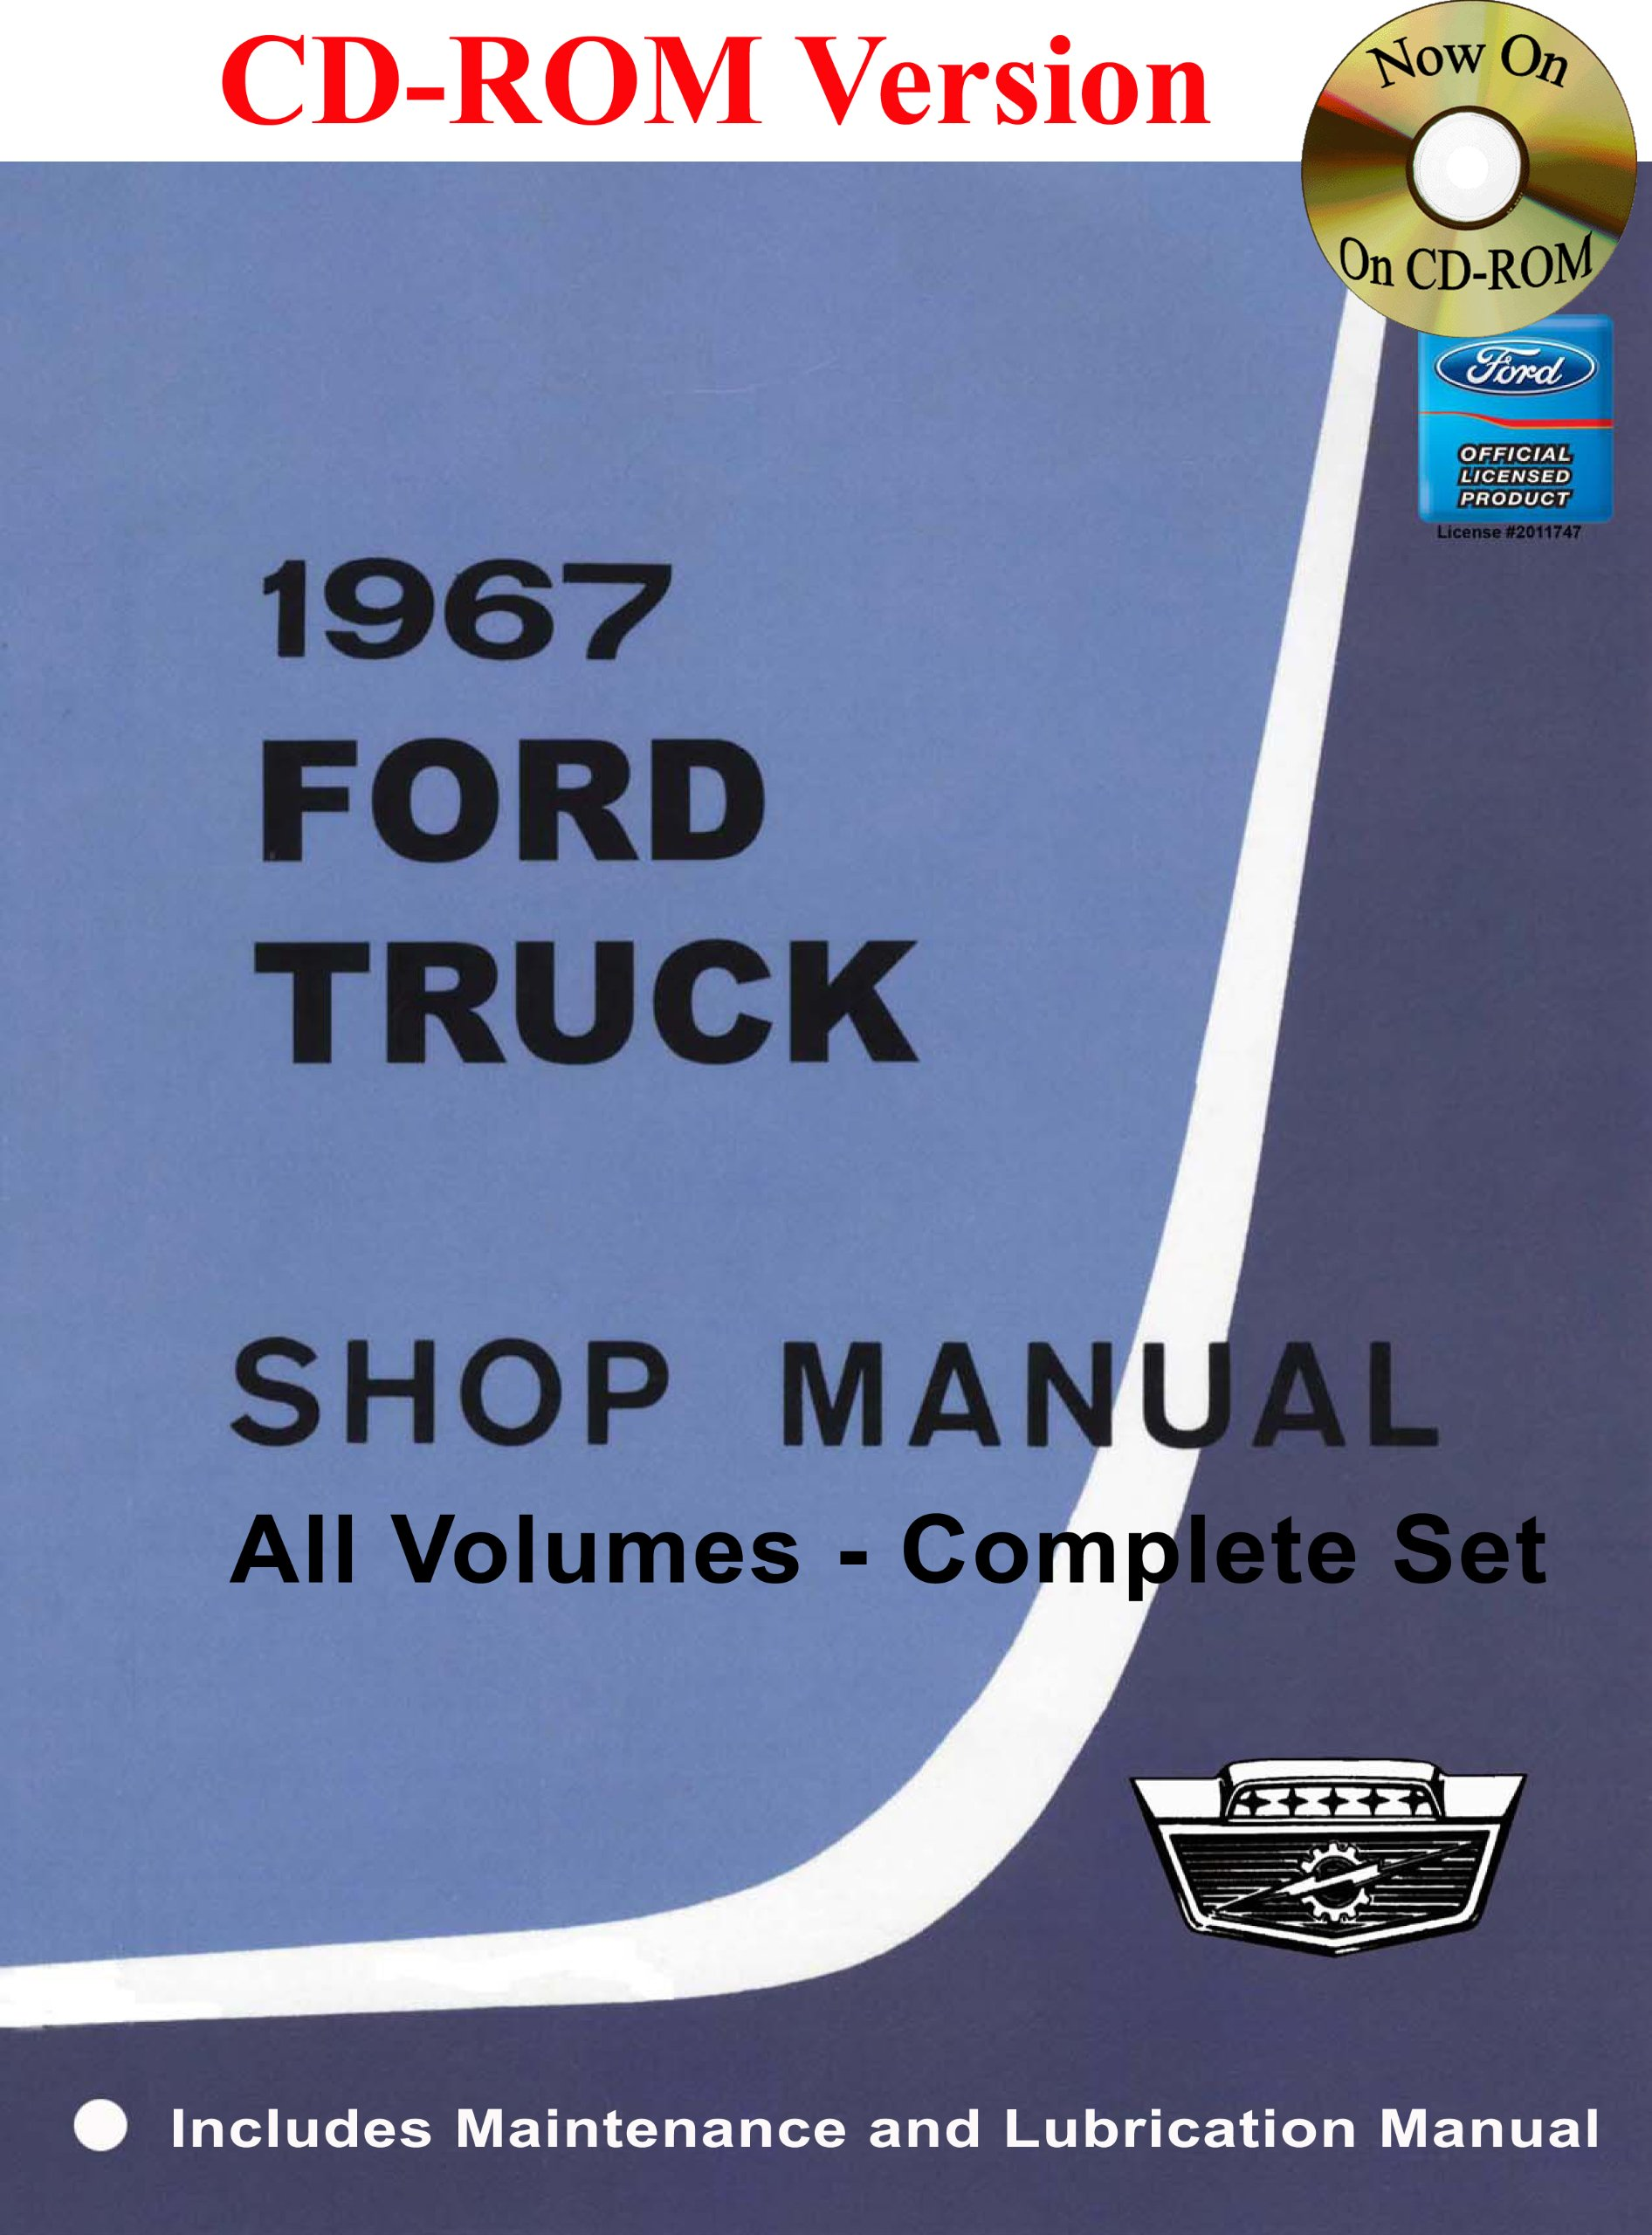 1967 ford truck shop manual ford motor company david e leblanc rh amazon com 1967 ford fairlane shop manual 1967 ford mustang shop manual